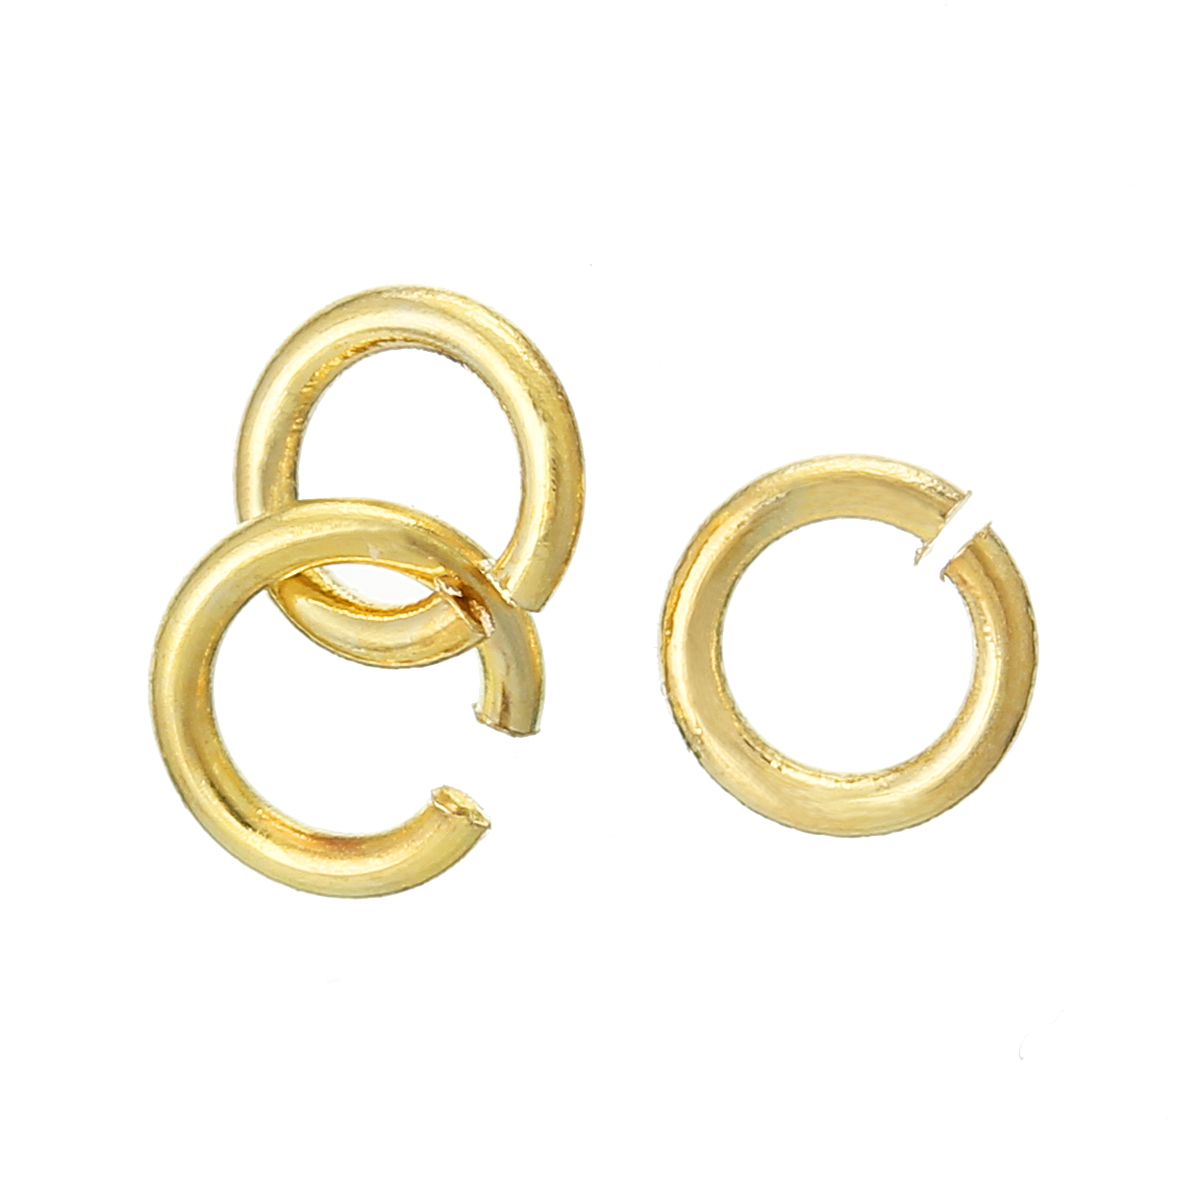 DoreenBeads Copper Opened Jump Rings Round Gold Plated 4.0mm( 1/8) Dia, 20 PCs 2016 newDoreenBeads Copper Opened Jump Rings Round Gold Plated 4.0mm( 1/8) Dia, 20 PCs 2016 new